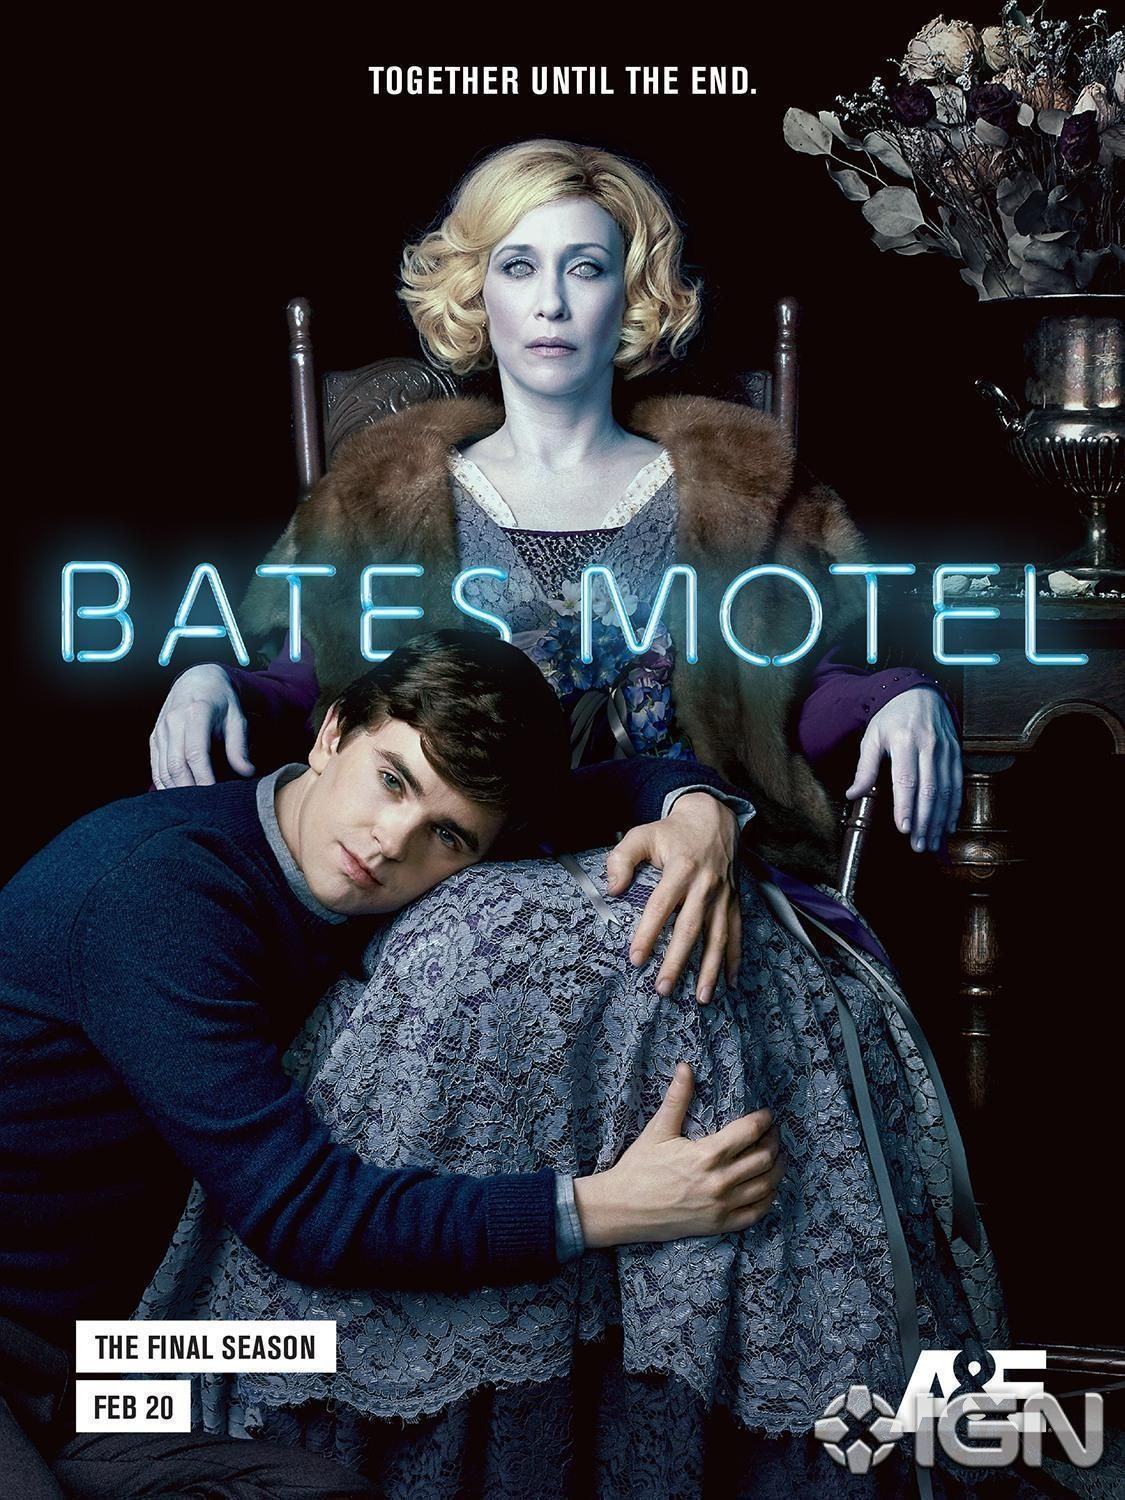 Bates Motel Morbid Posters For The Final Season Are Here Ihorror Bates Motel Bates Motel Season 5 Bates Motel Movie